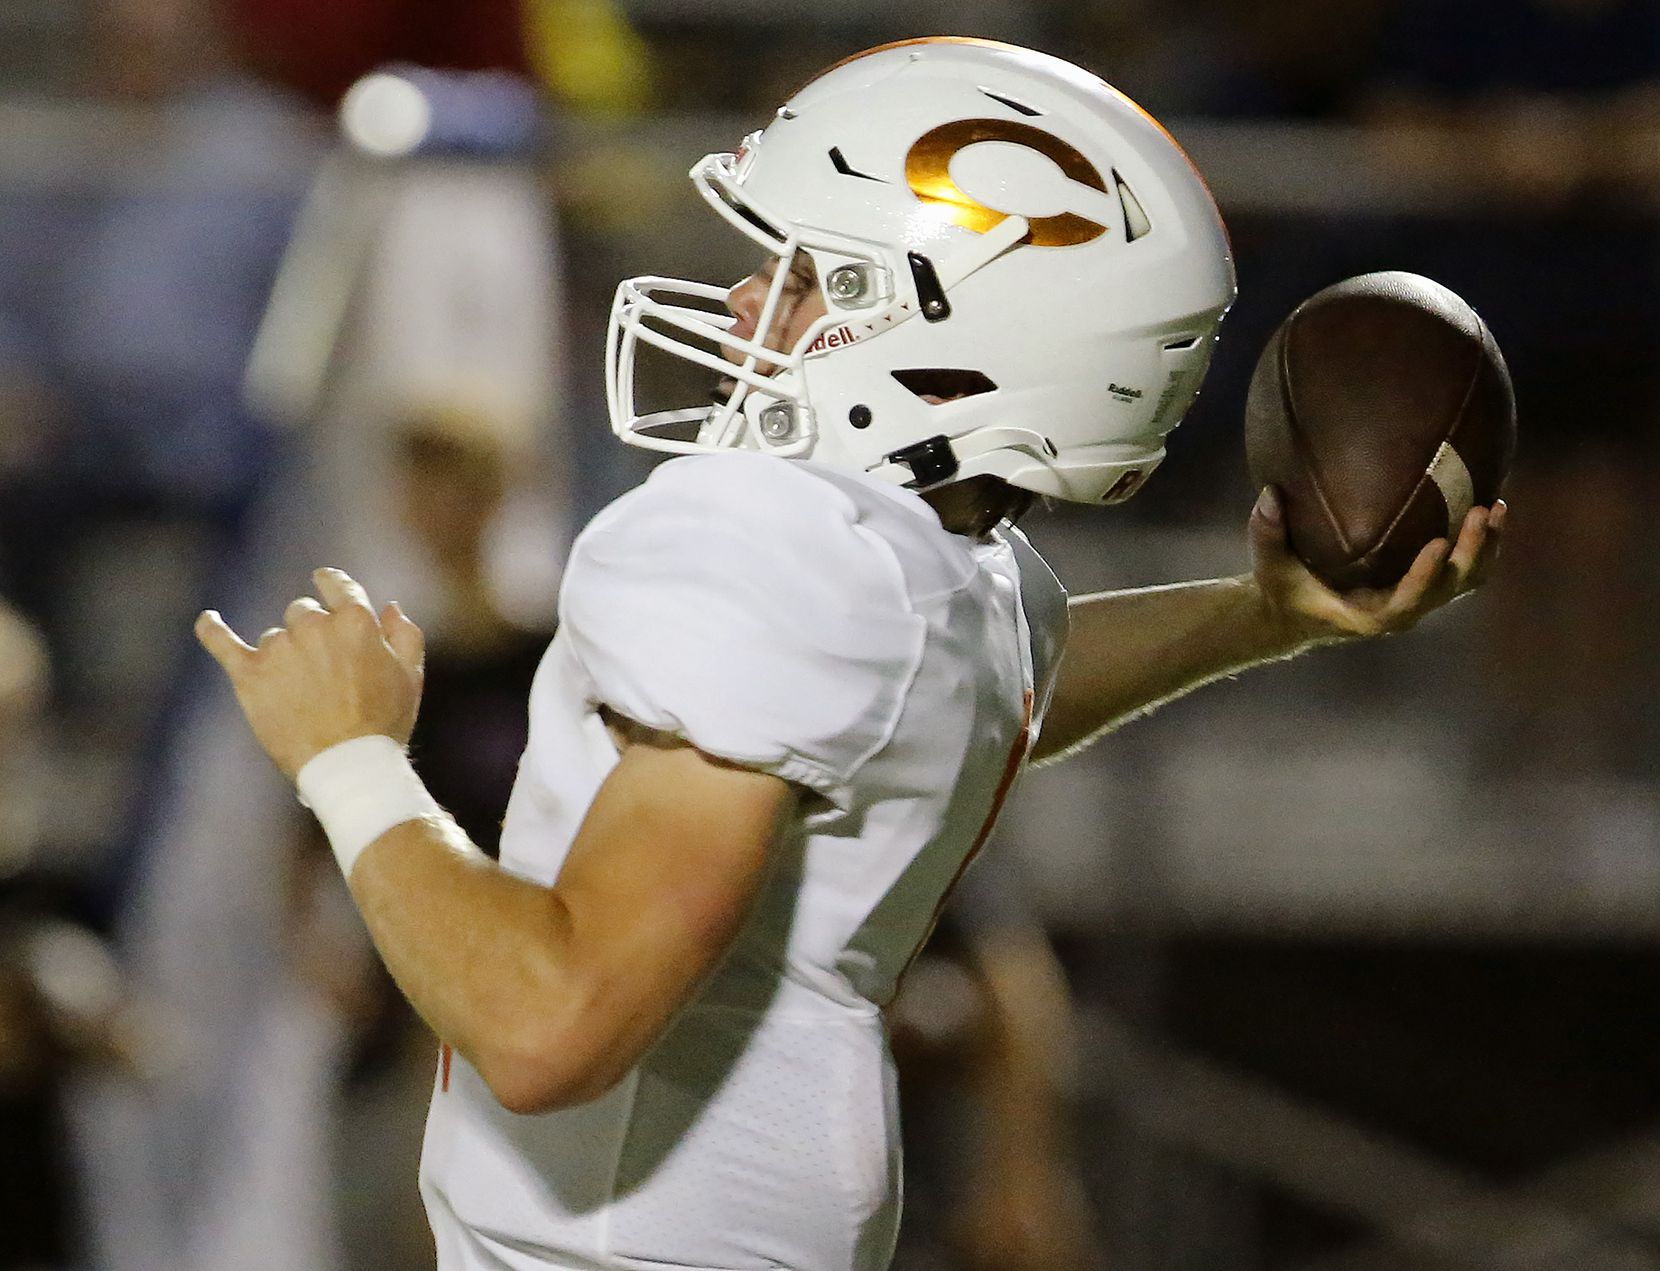 Celina High School quarterback Noah Bentley (1) throws a pass during the first half as Melissa High School hosted Celina High School at Cardinal Field in Melissa on Friday night, August 27, 2021. (Stewart F. House/Special Contributor)